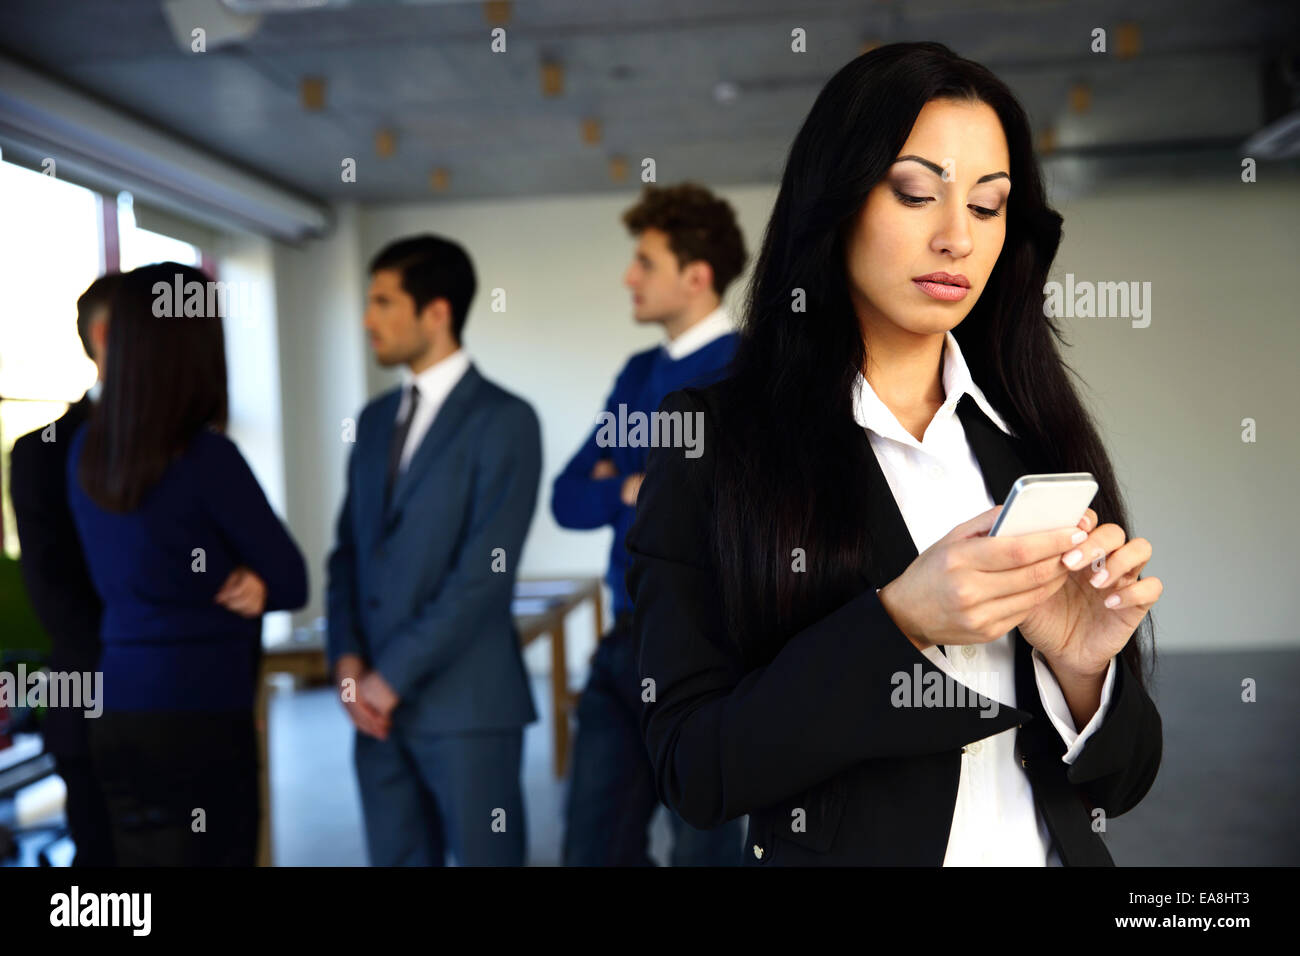 Beautiful woman using smartphone with colleagues on background - Stock Image